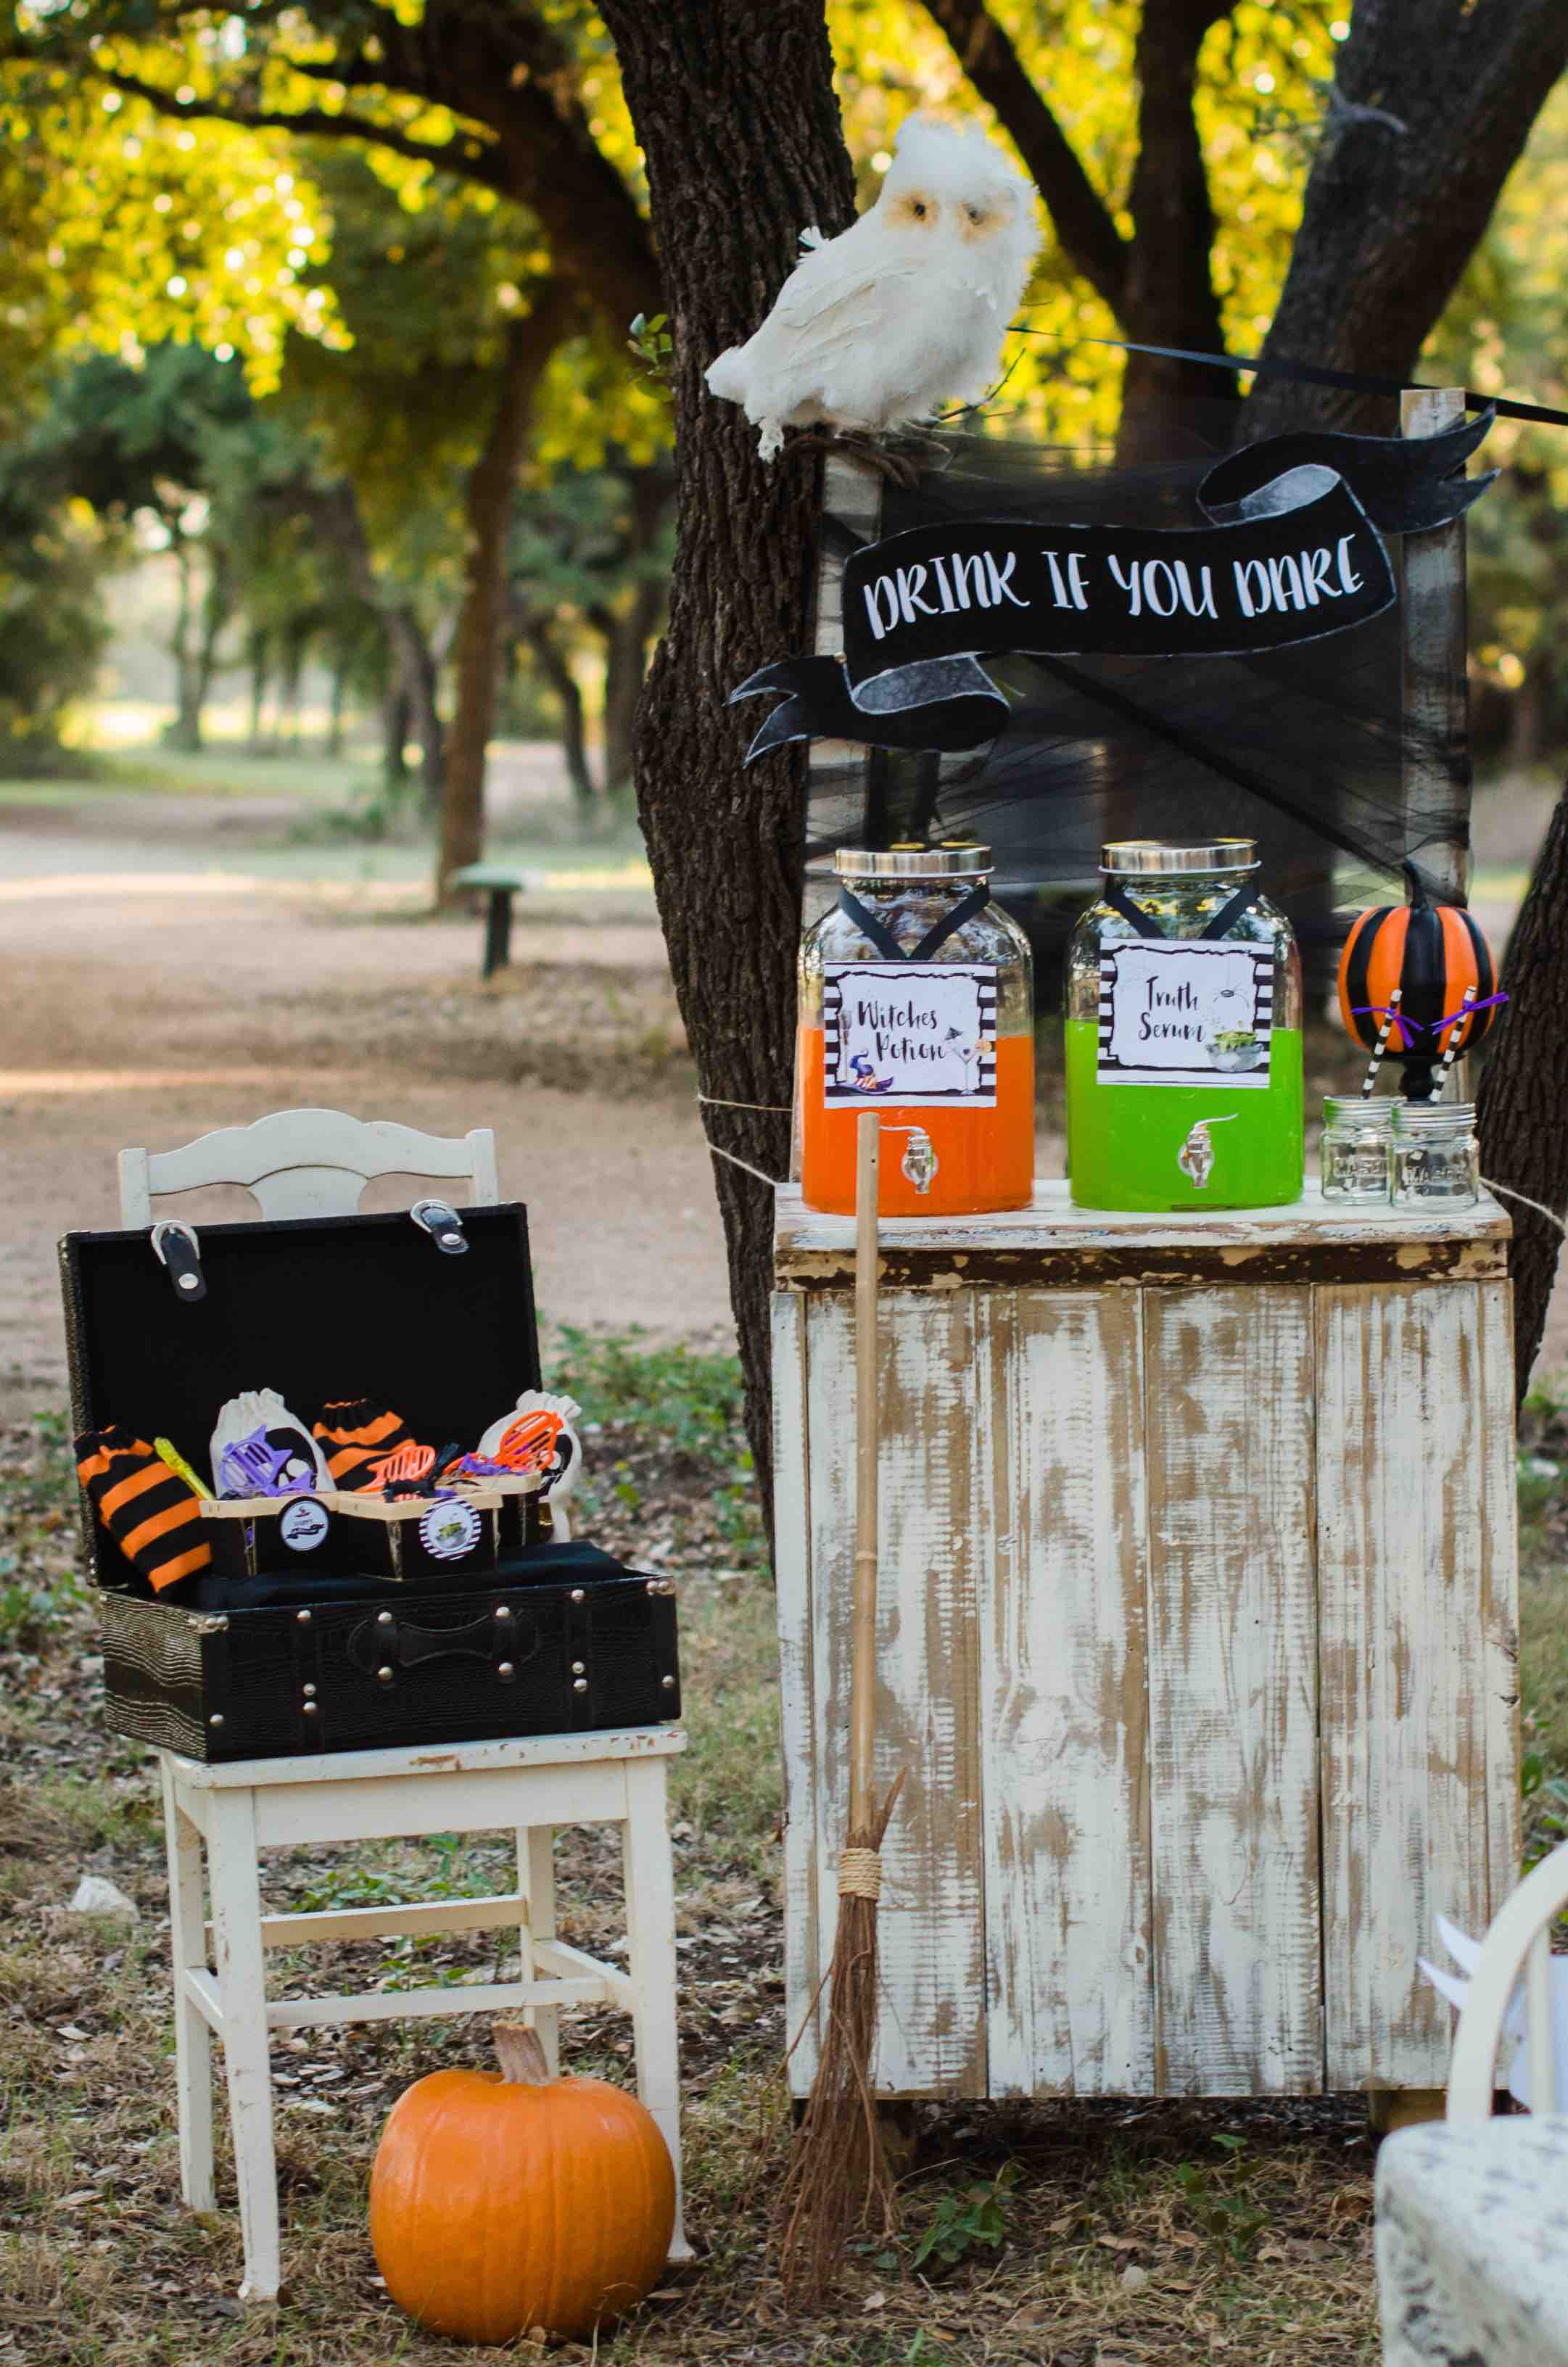 Be creative with your Halloween Party Drink Station and serve Witches Potion and Truth Serum. Click to see all the Halloween Party Ideas that you can re-create for your very own Halloween Kids Party. Styled by party stylist Mint Event Design. #halloween #partyideas #partyinspiration #partydecor #partyprintables #drinkstation #halloweenprintables #halloweendecorations